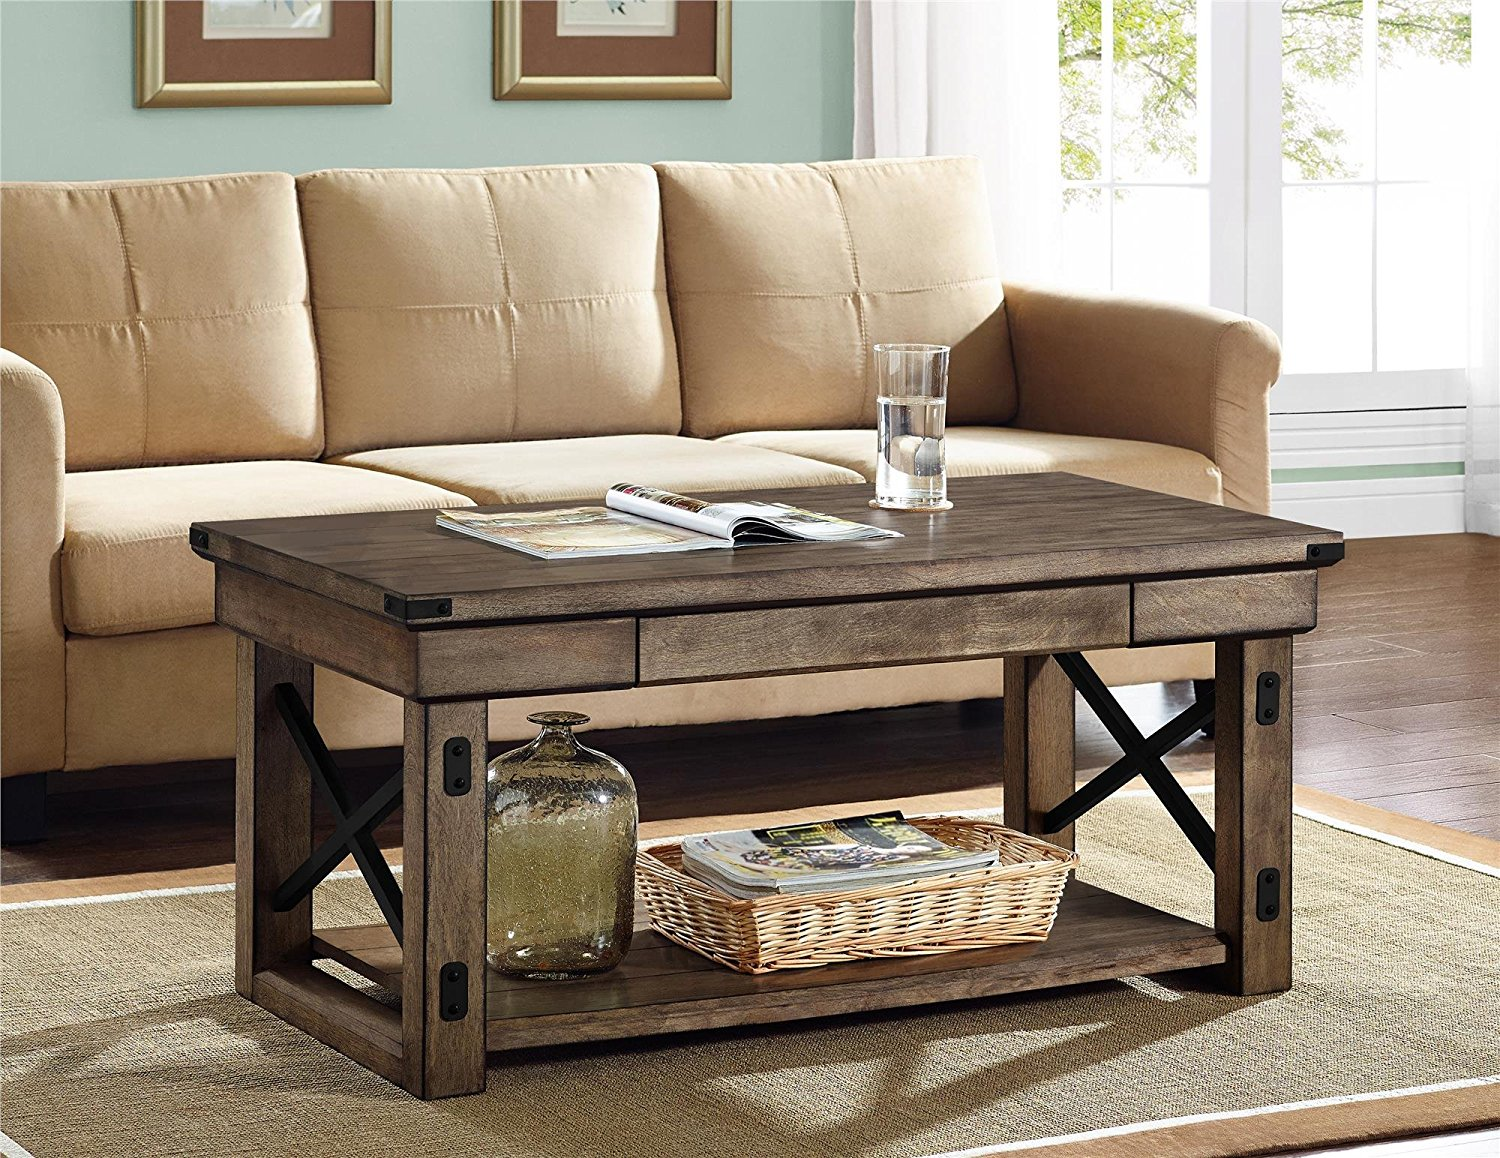 dining room rustic wooden coffee table log looking tables ideas metal accent full size west elm glass floor lamp pier one imports bedroom furniture antique marble end round wood